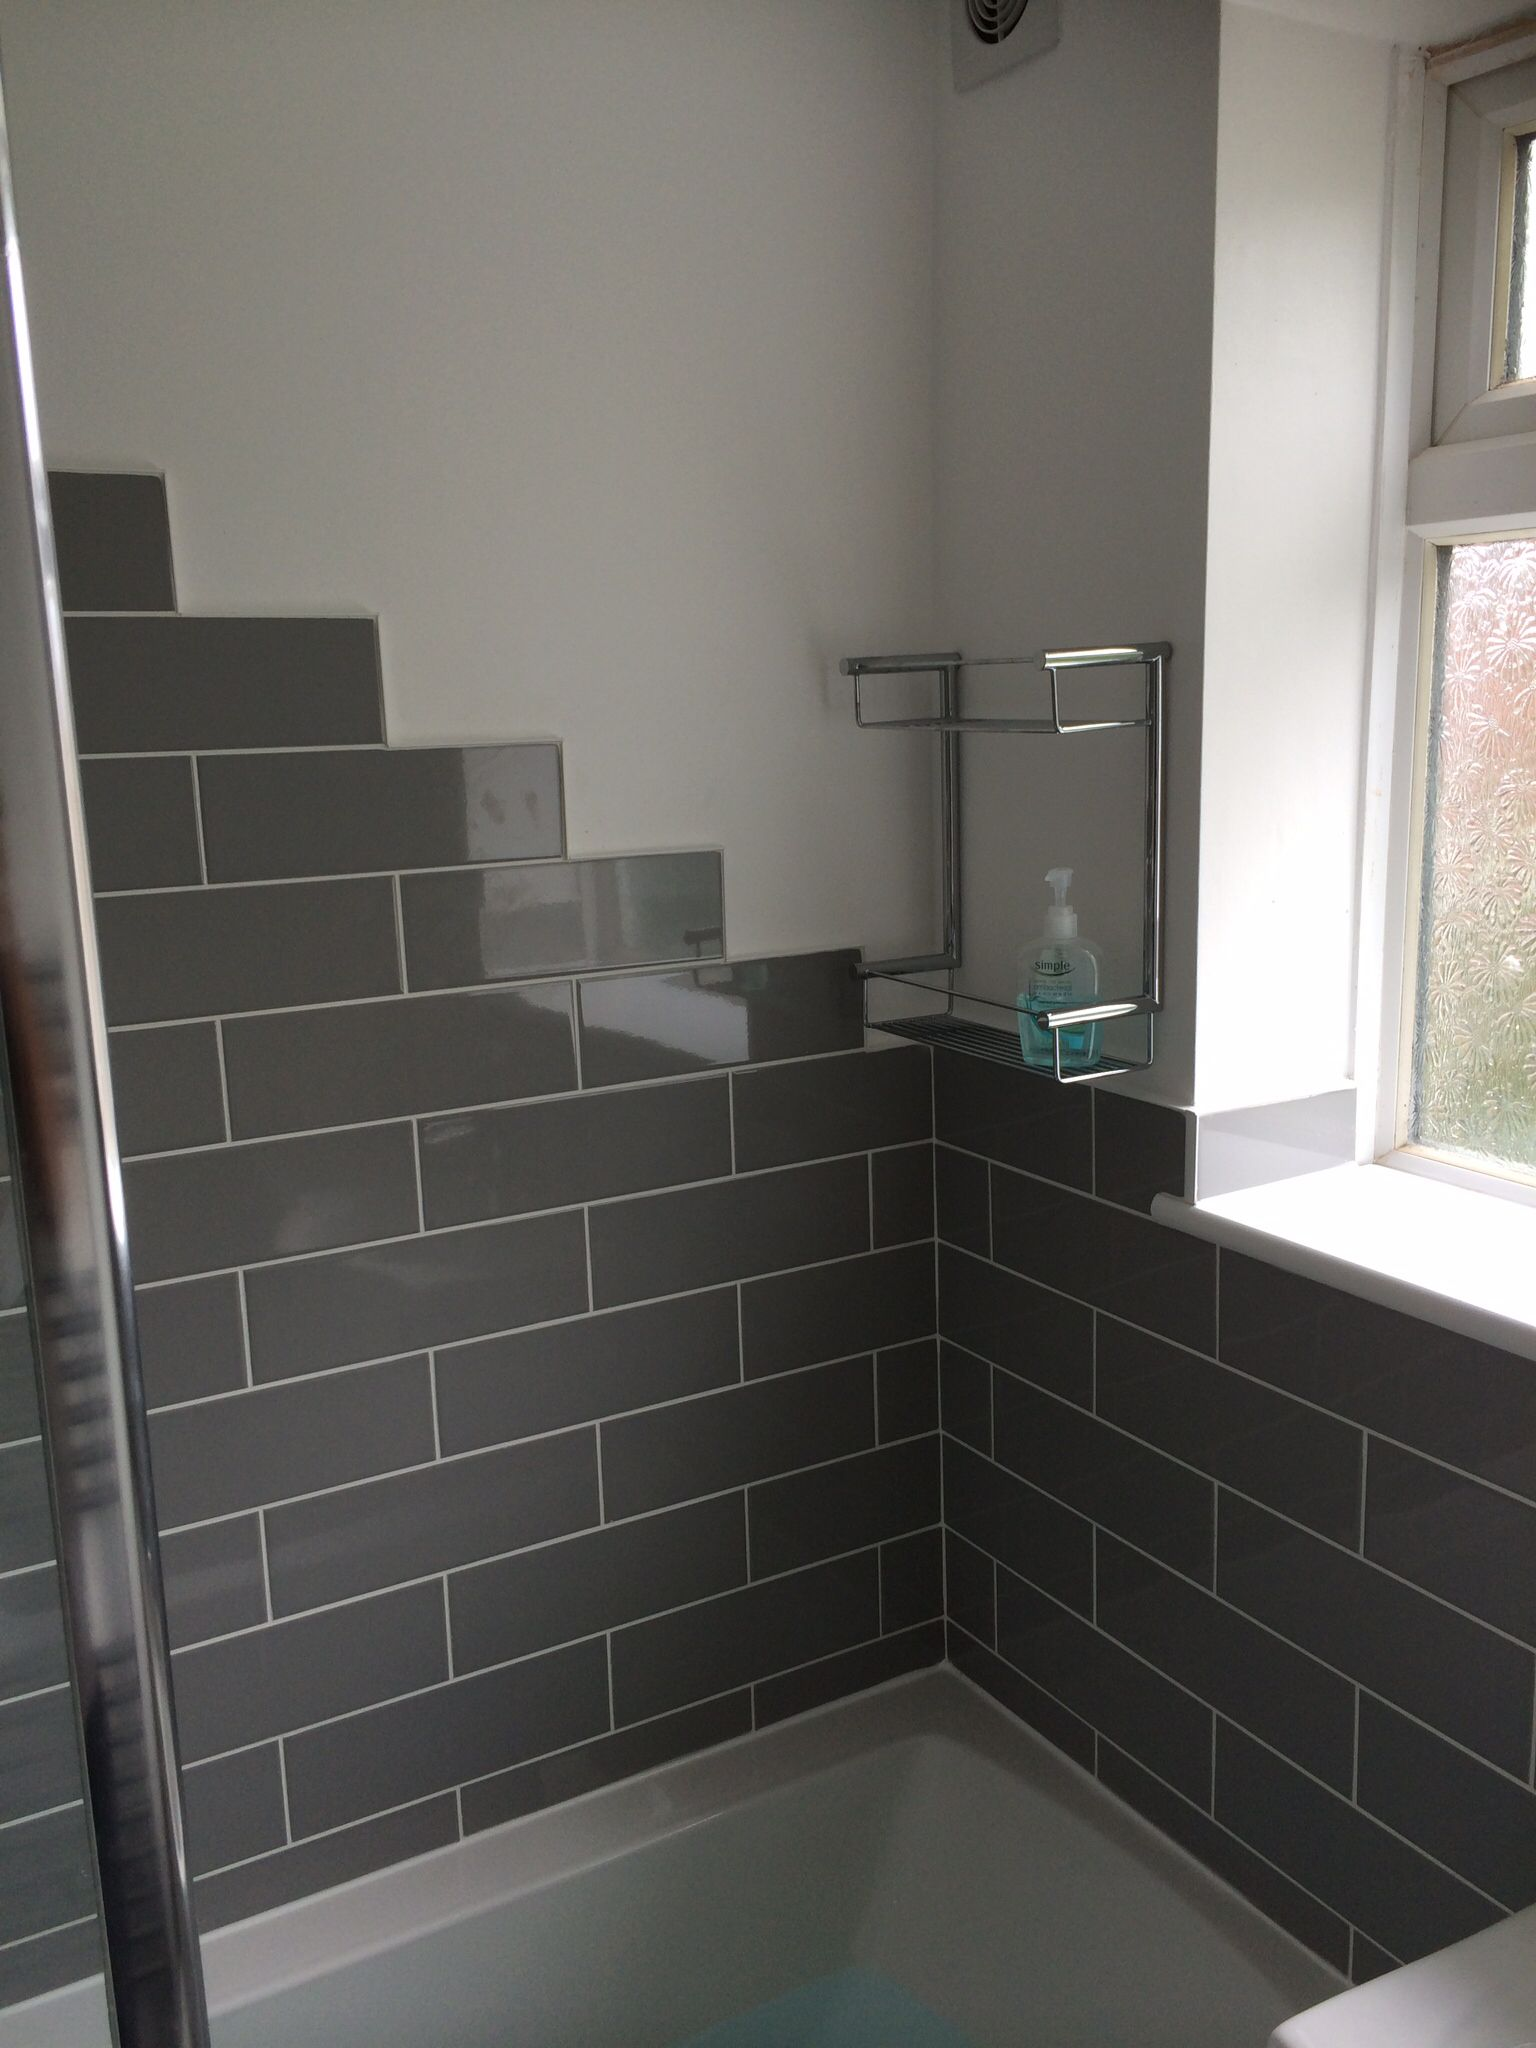 Stunning Linear Grey Brick Style Tiles From Topps Tiles Designed And  Installed By AQUANERO Bathroom